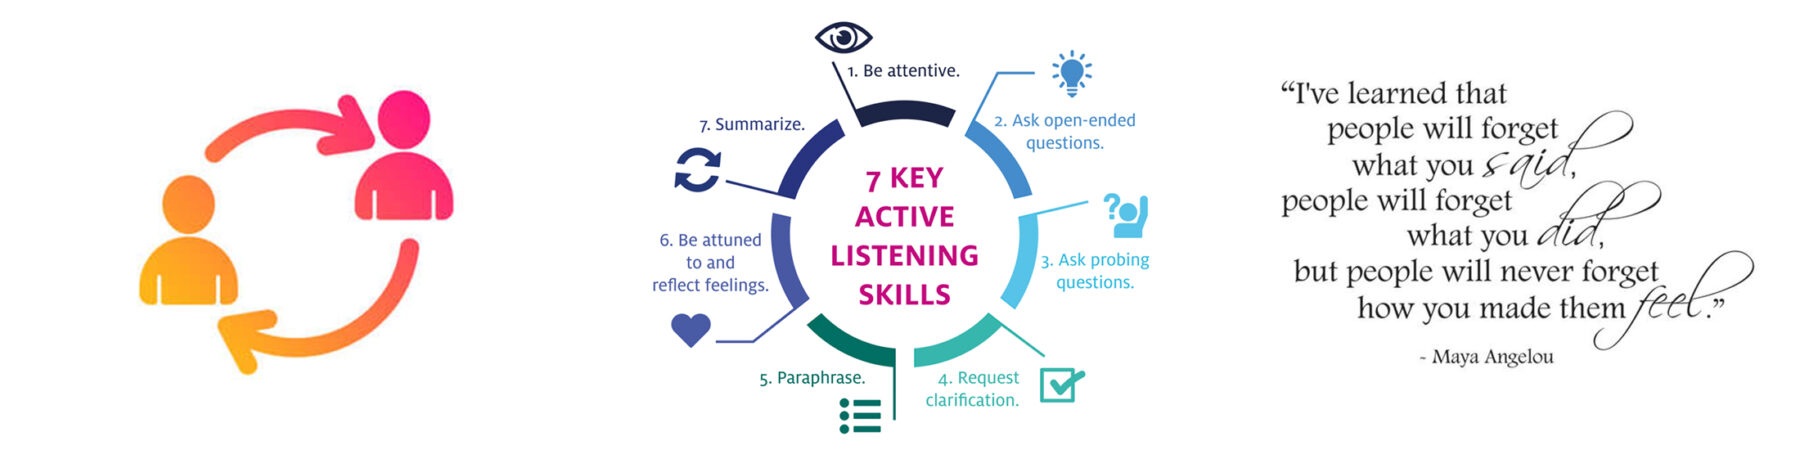 Graphics describing how to communicate effectively